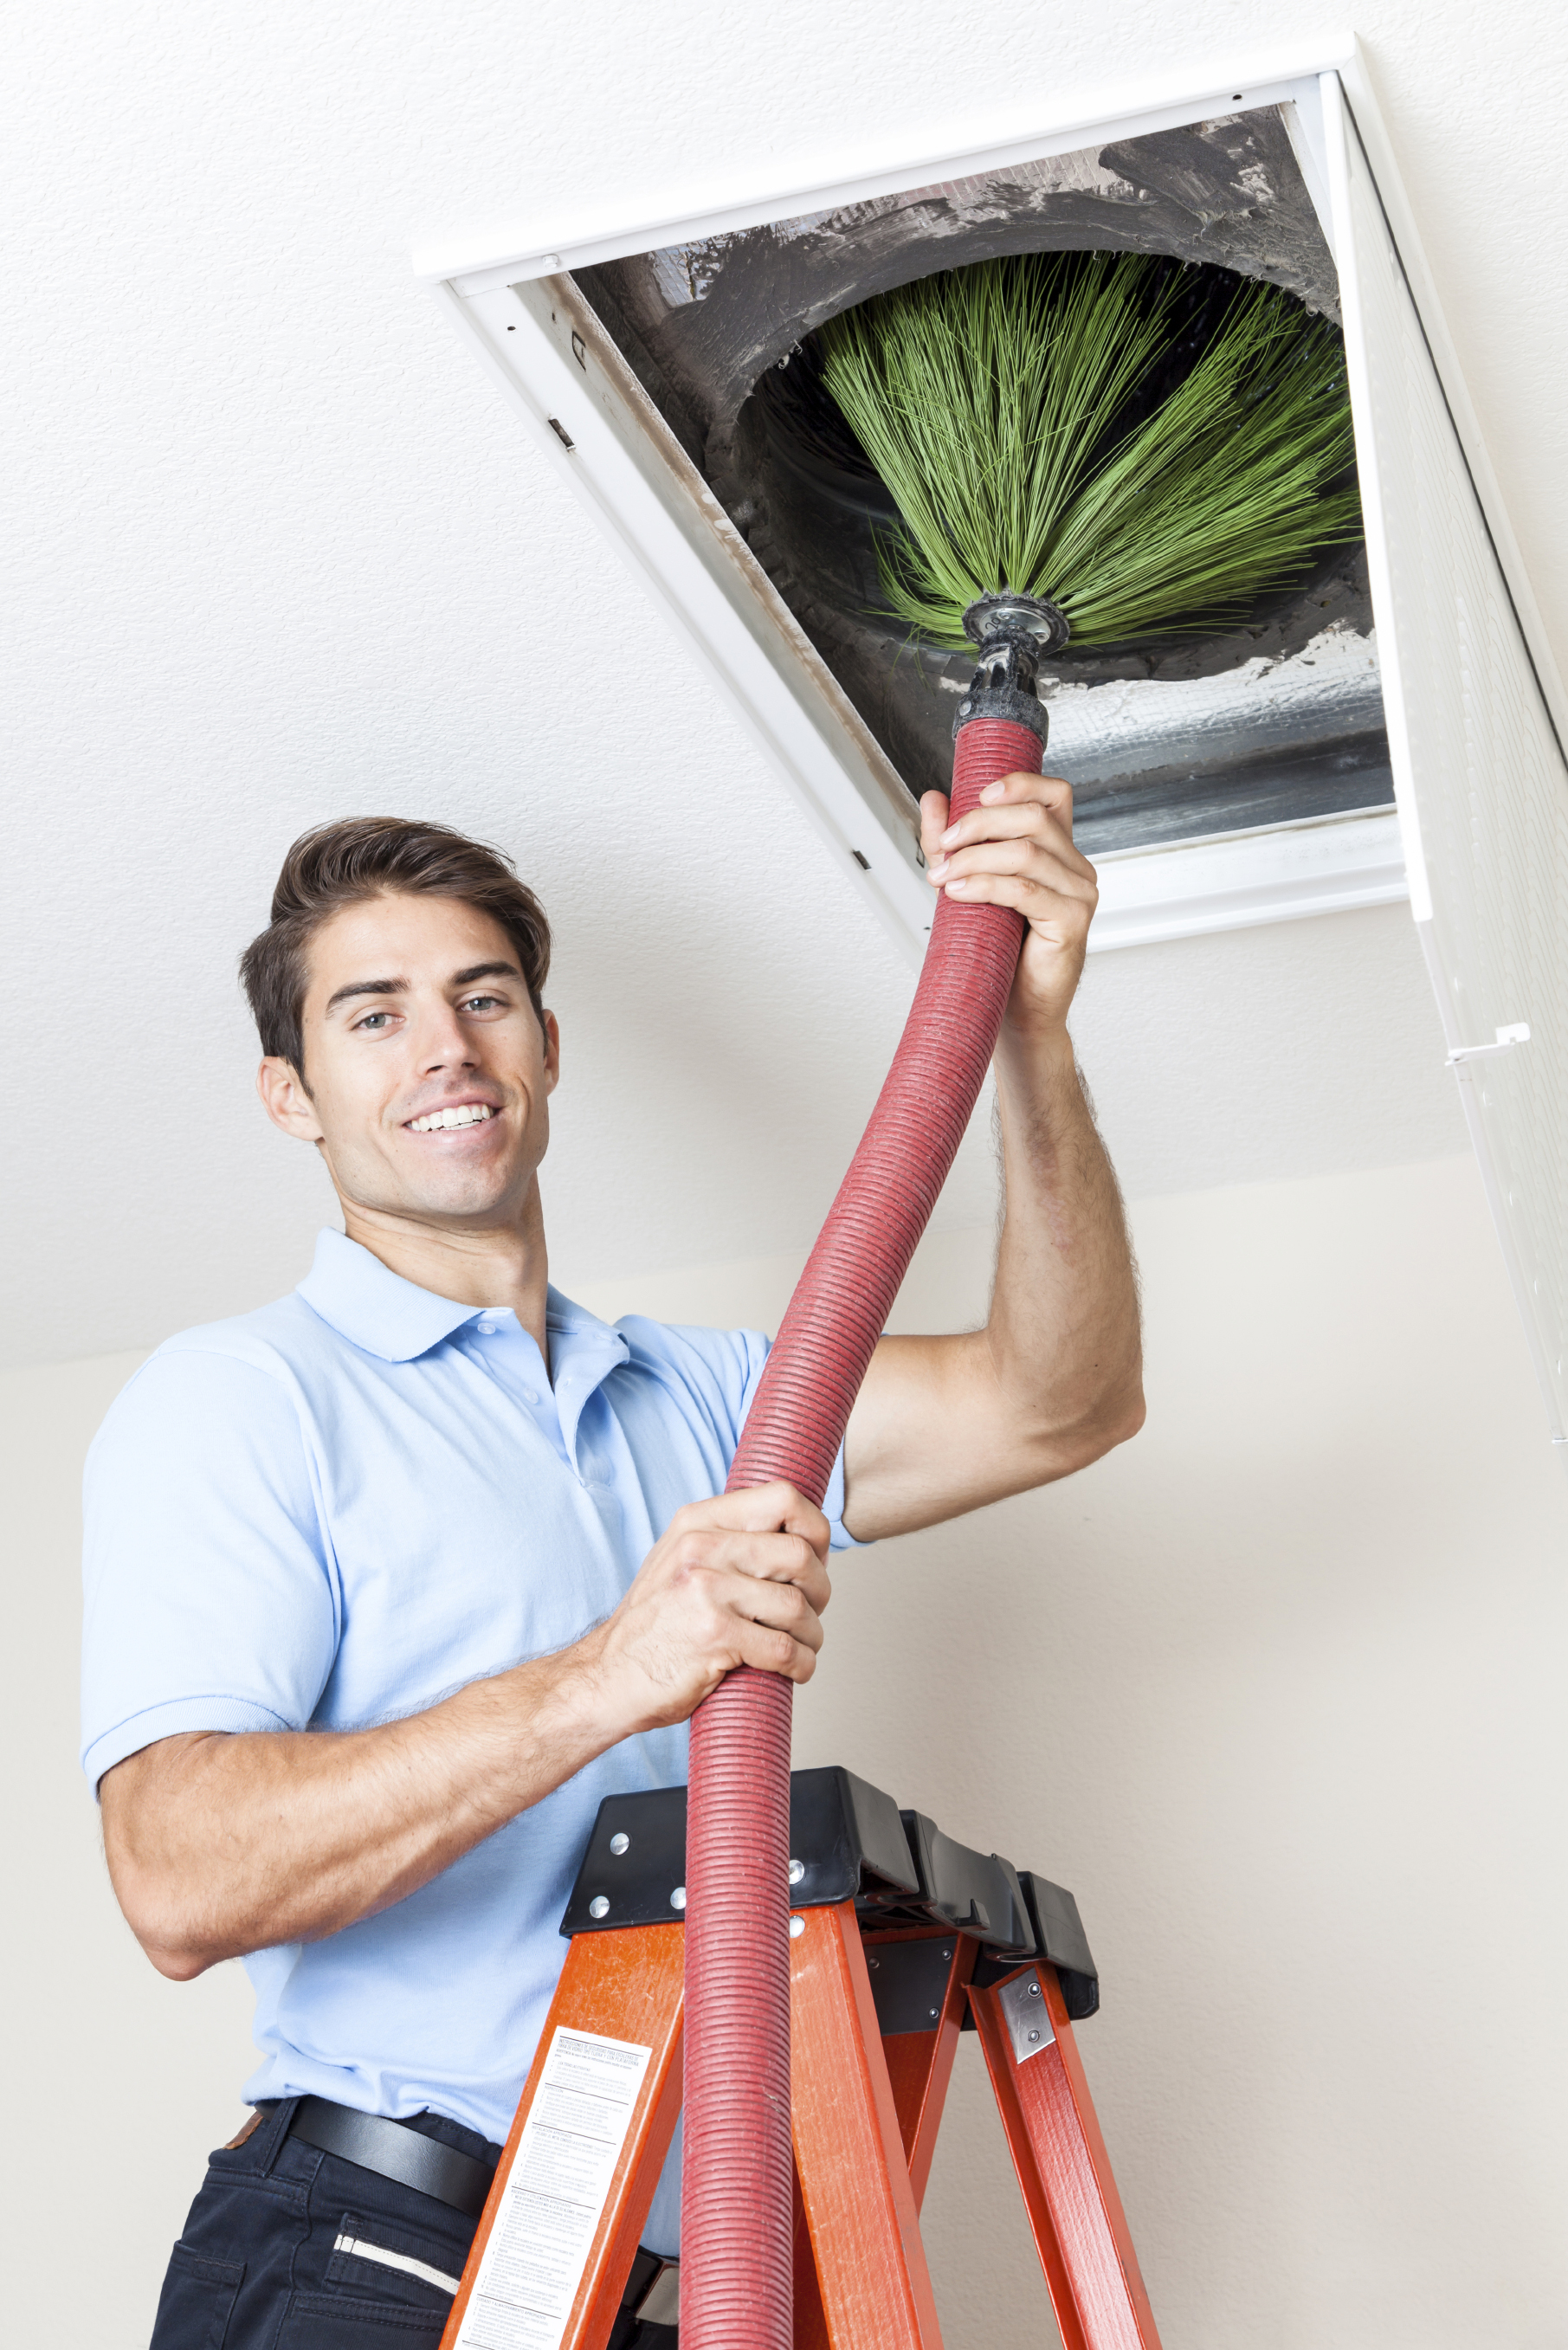 Cuairductcleaning